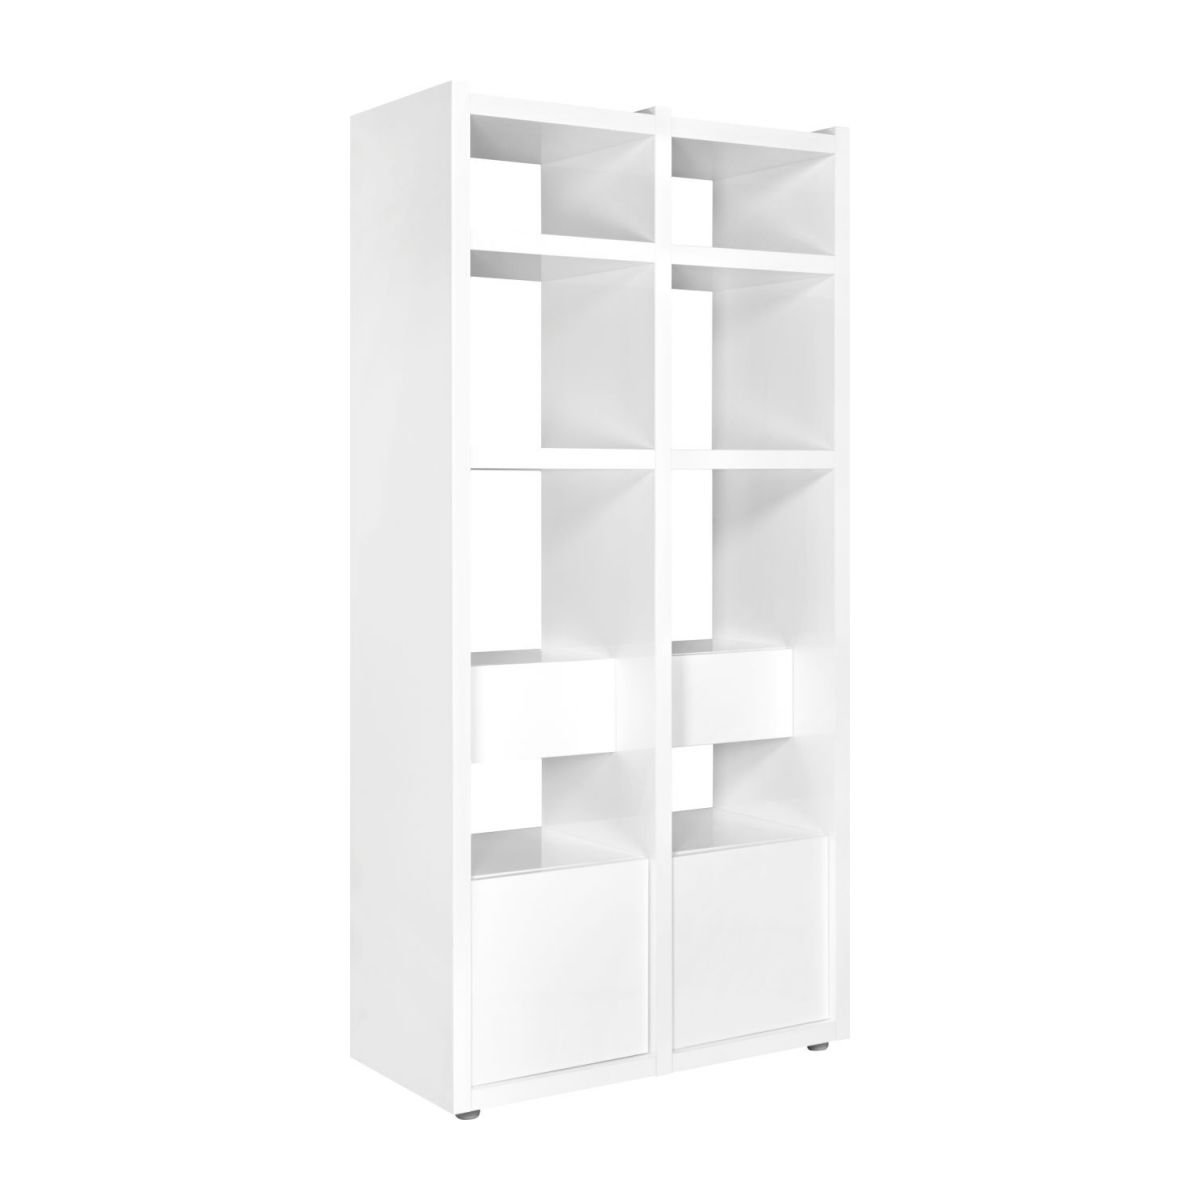 genna extension petit mod le pour biblioth que en blanc laqu habitat. Black Bedroom Furniture Sets. Home Design Ideas